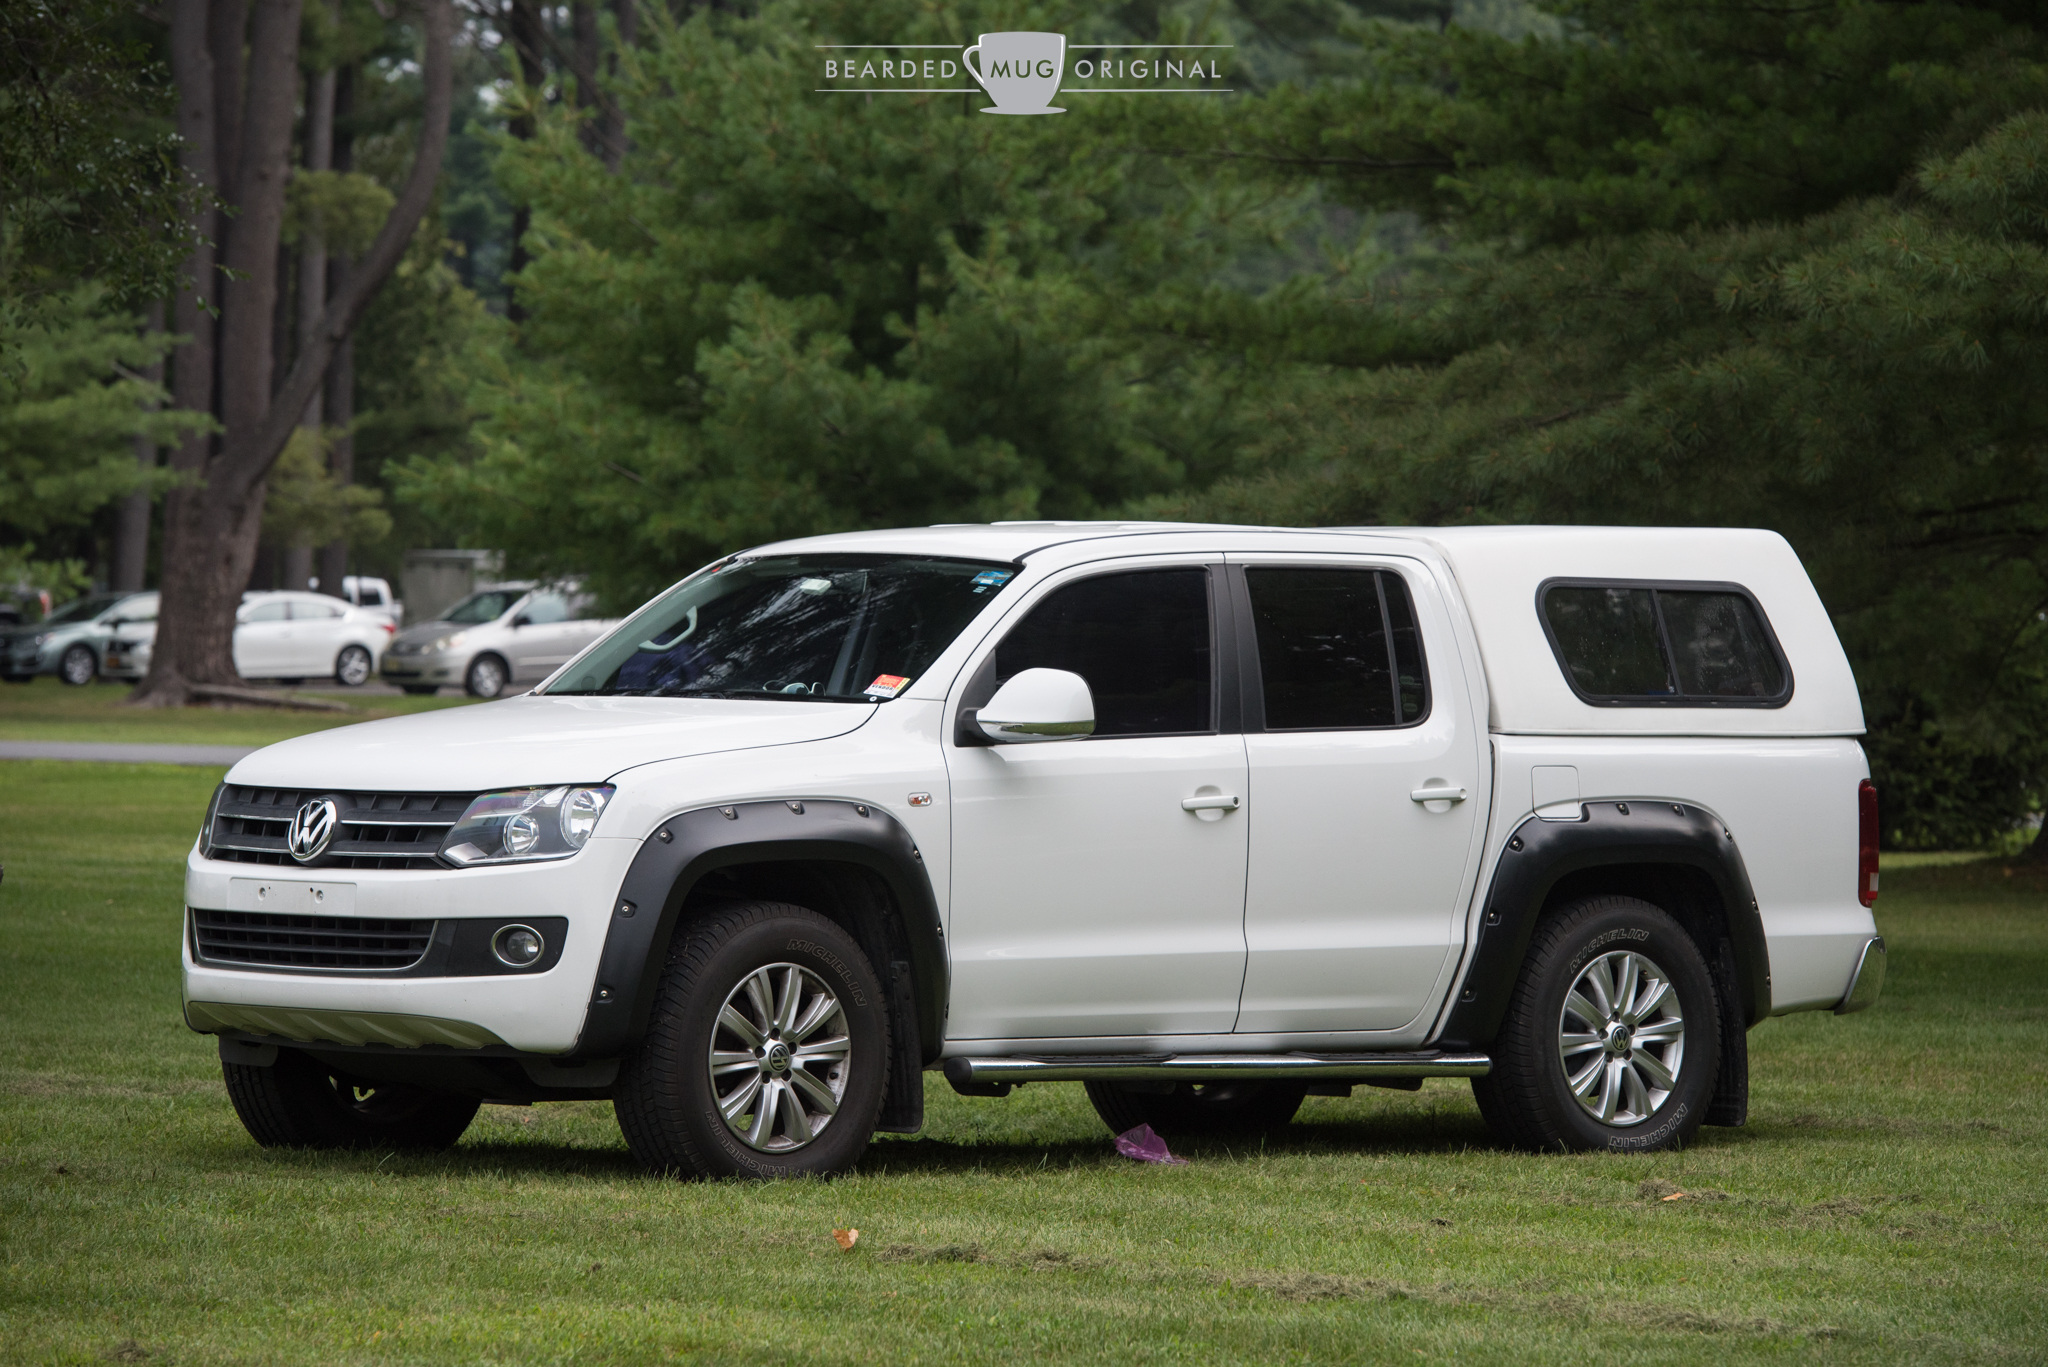 This eye-catching Amarok hauled its way into my heart.